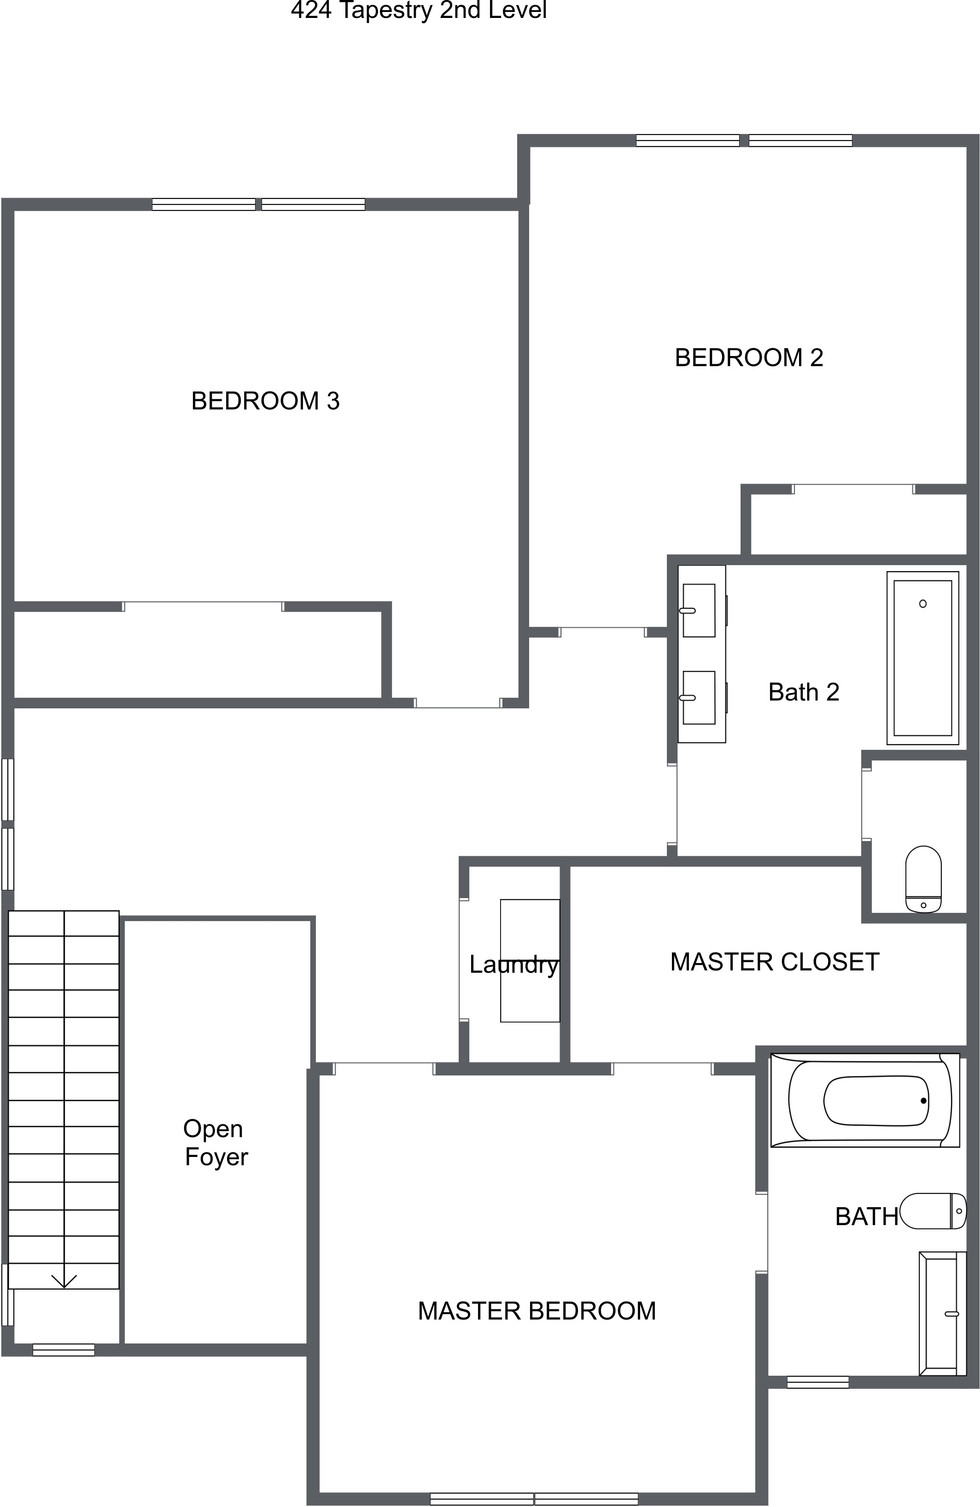 424 tapestry place - floor plan 2nd Floo